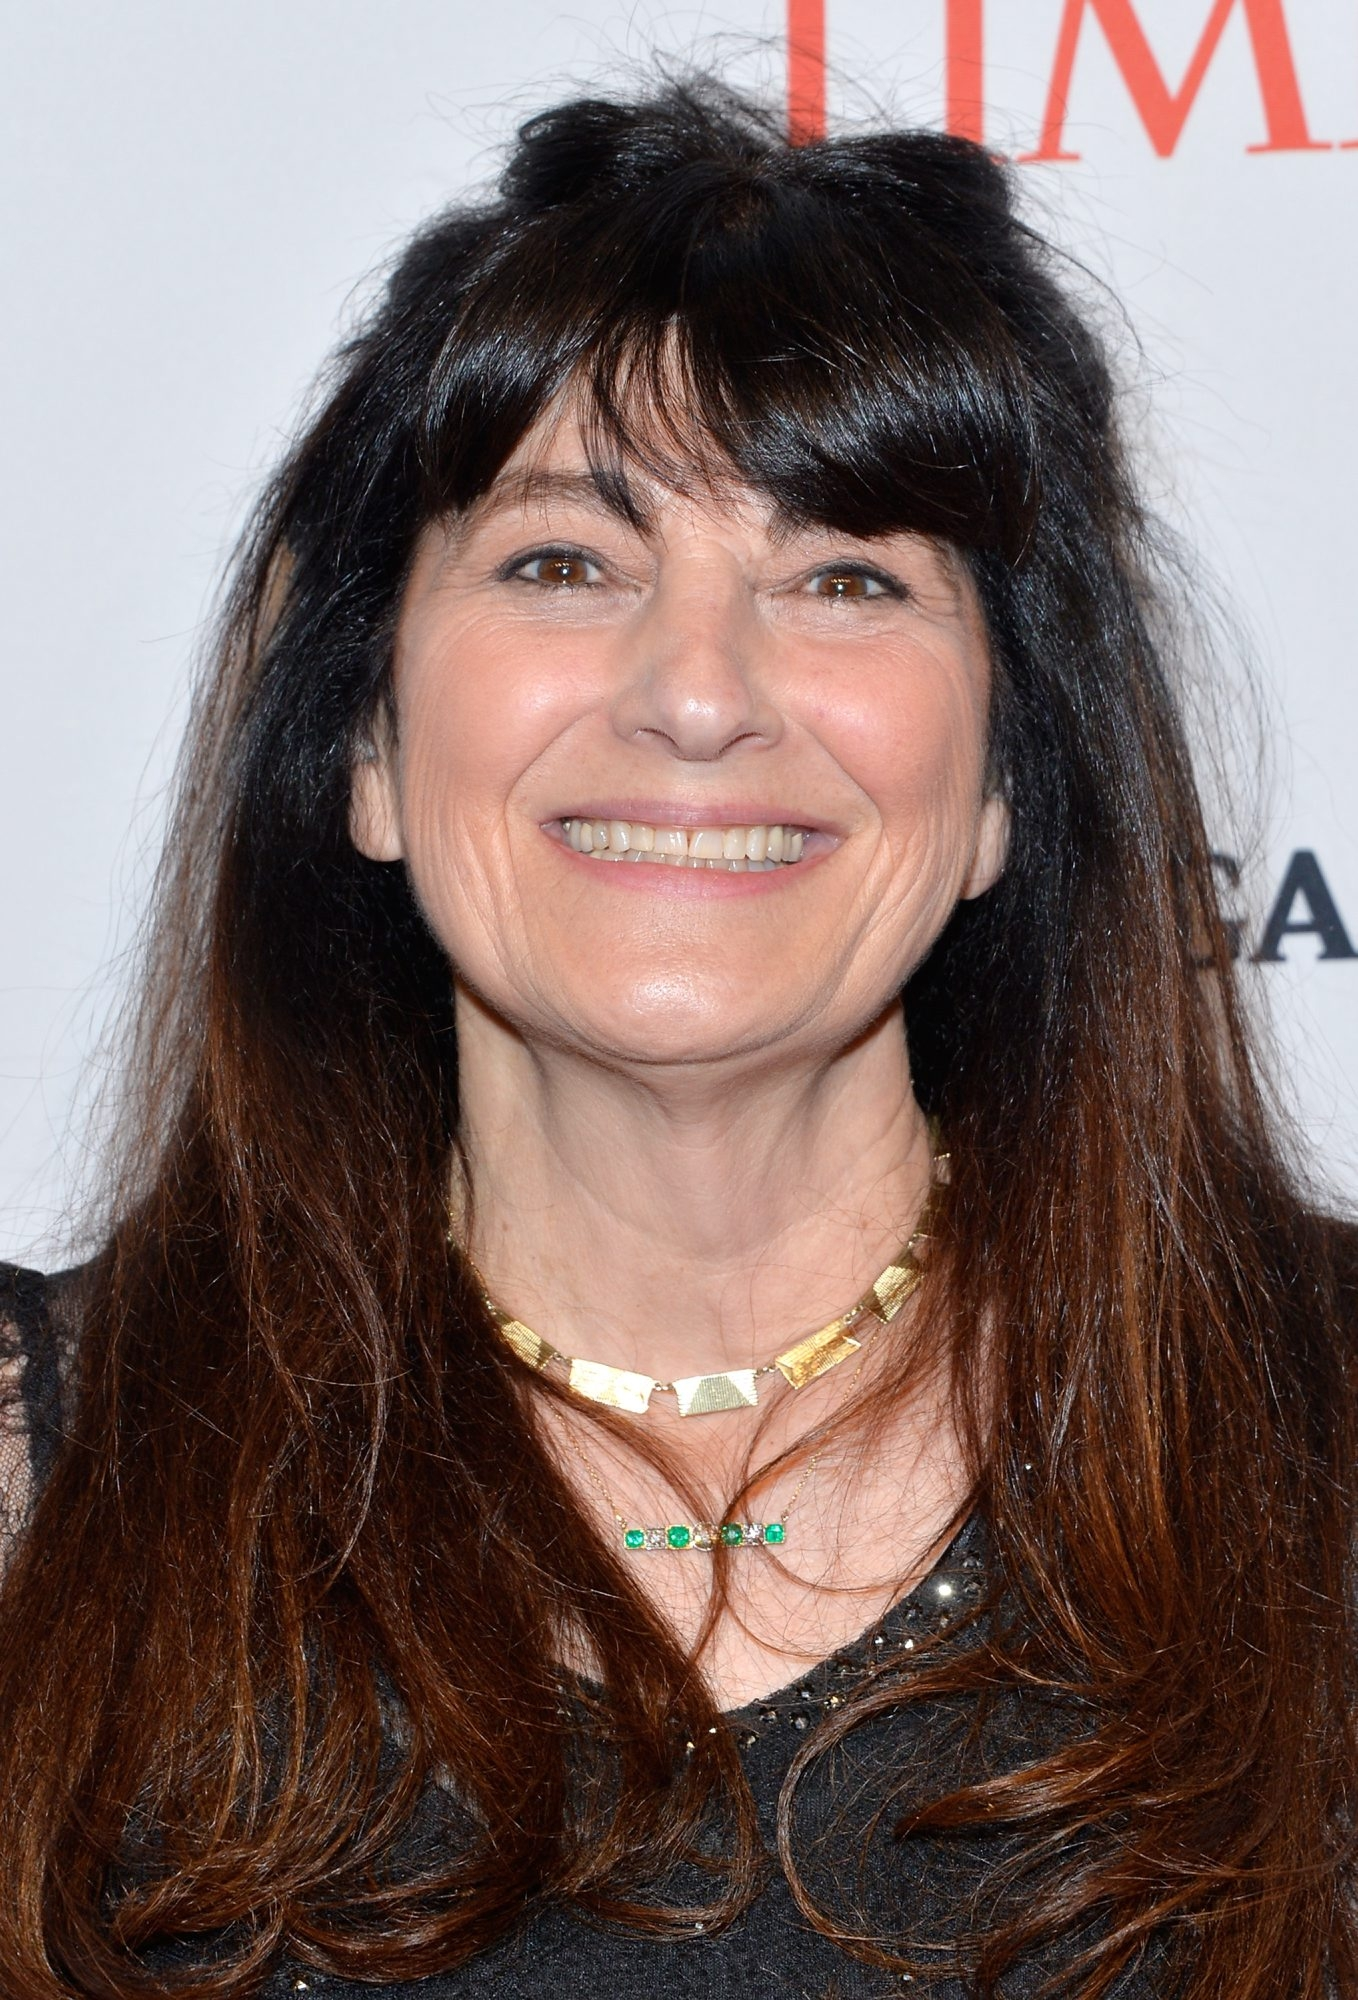 Ruth Reichl bases her novel on her experience at Gourmet magazine.